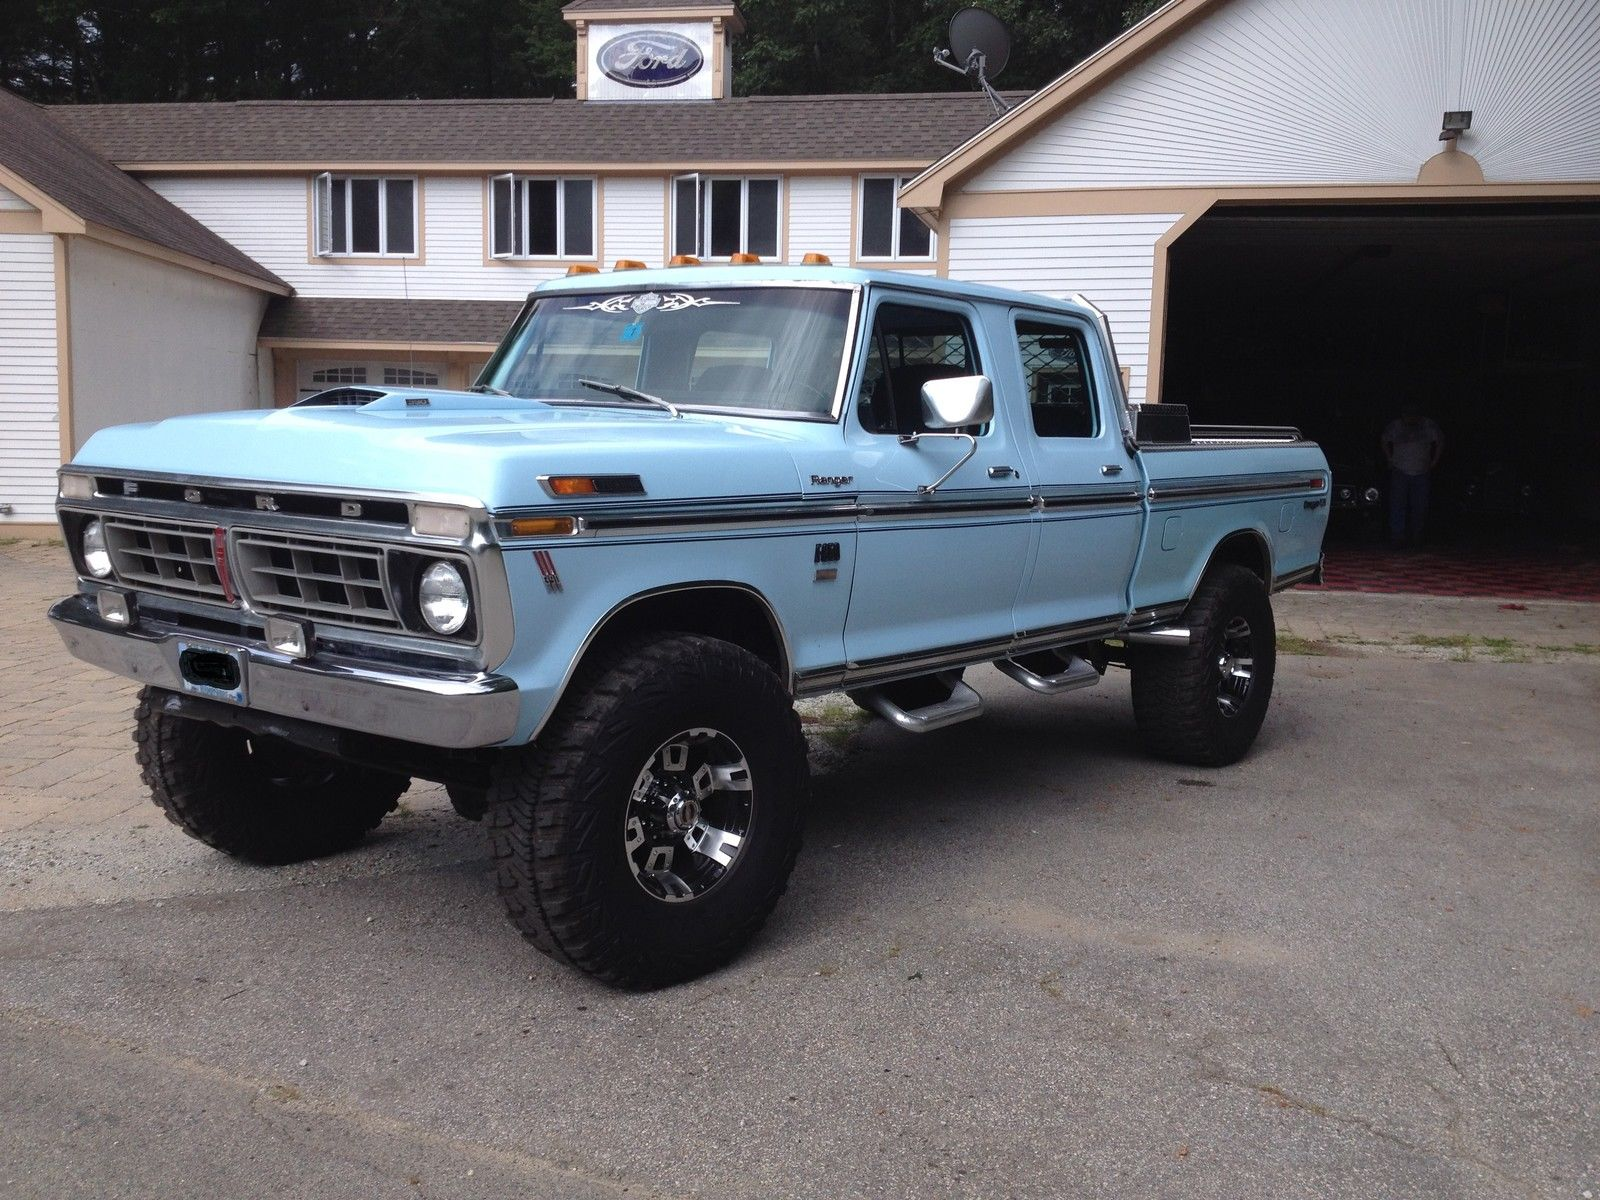 1976 ford f 250 crewcab classic ford f 250 1976 for sale. Black Bedroom Furniture Sets. Home Design Ideas